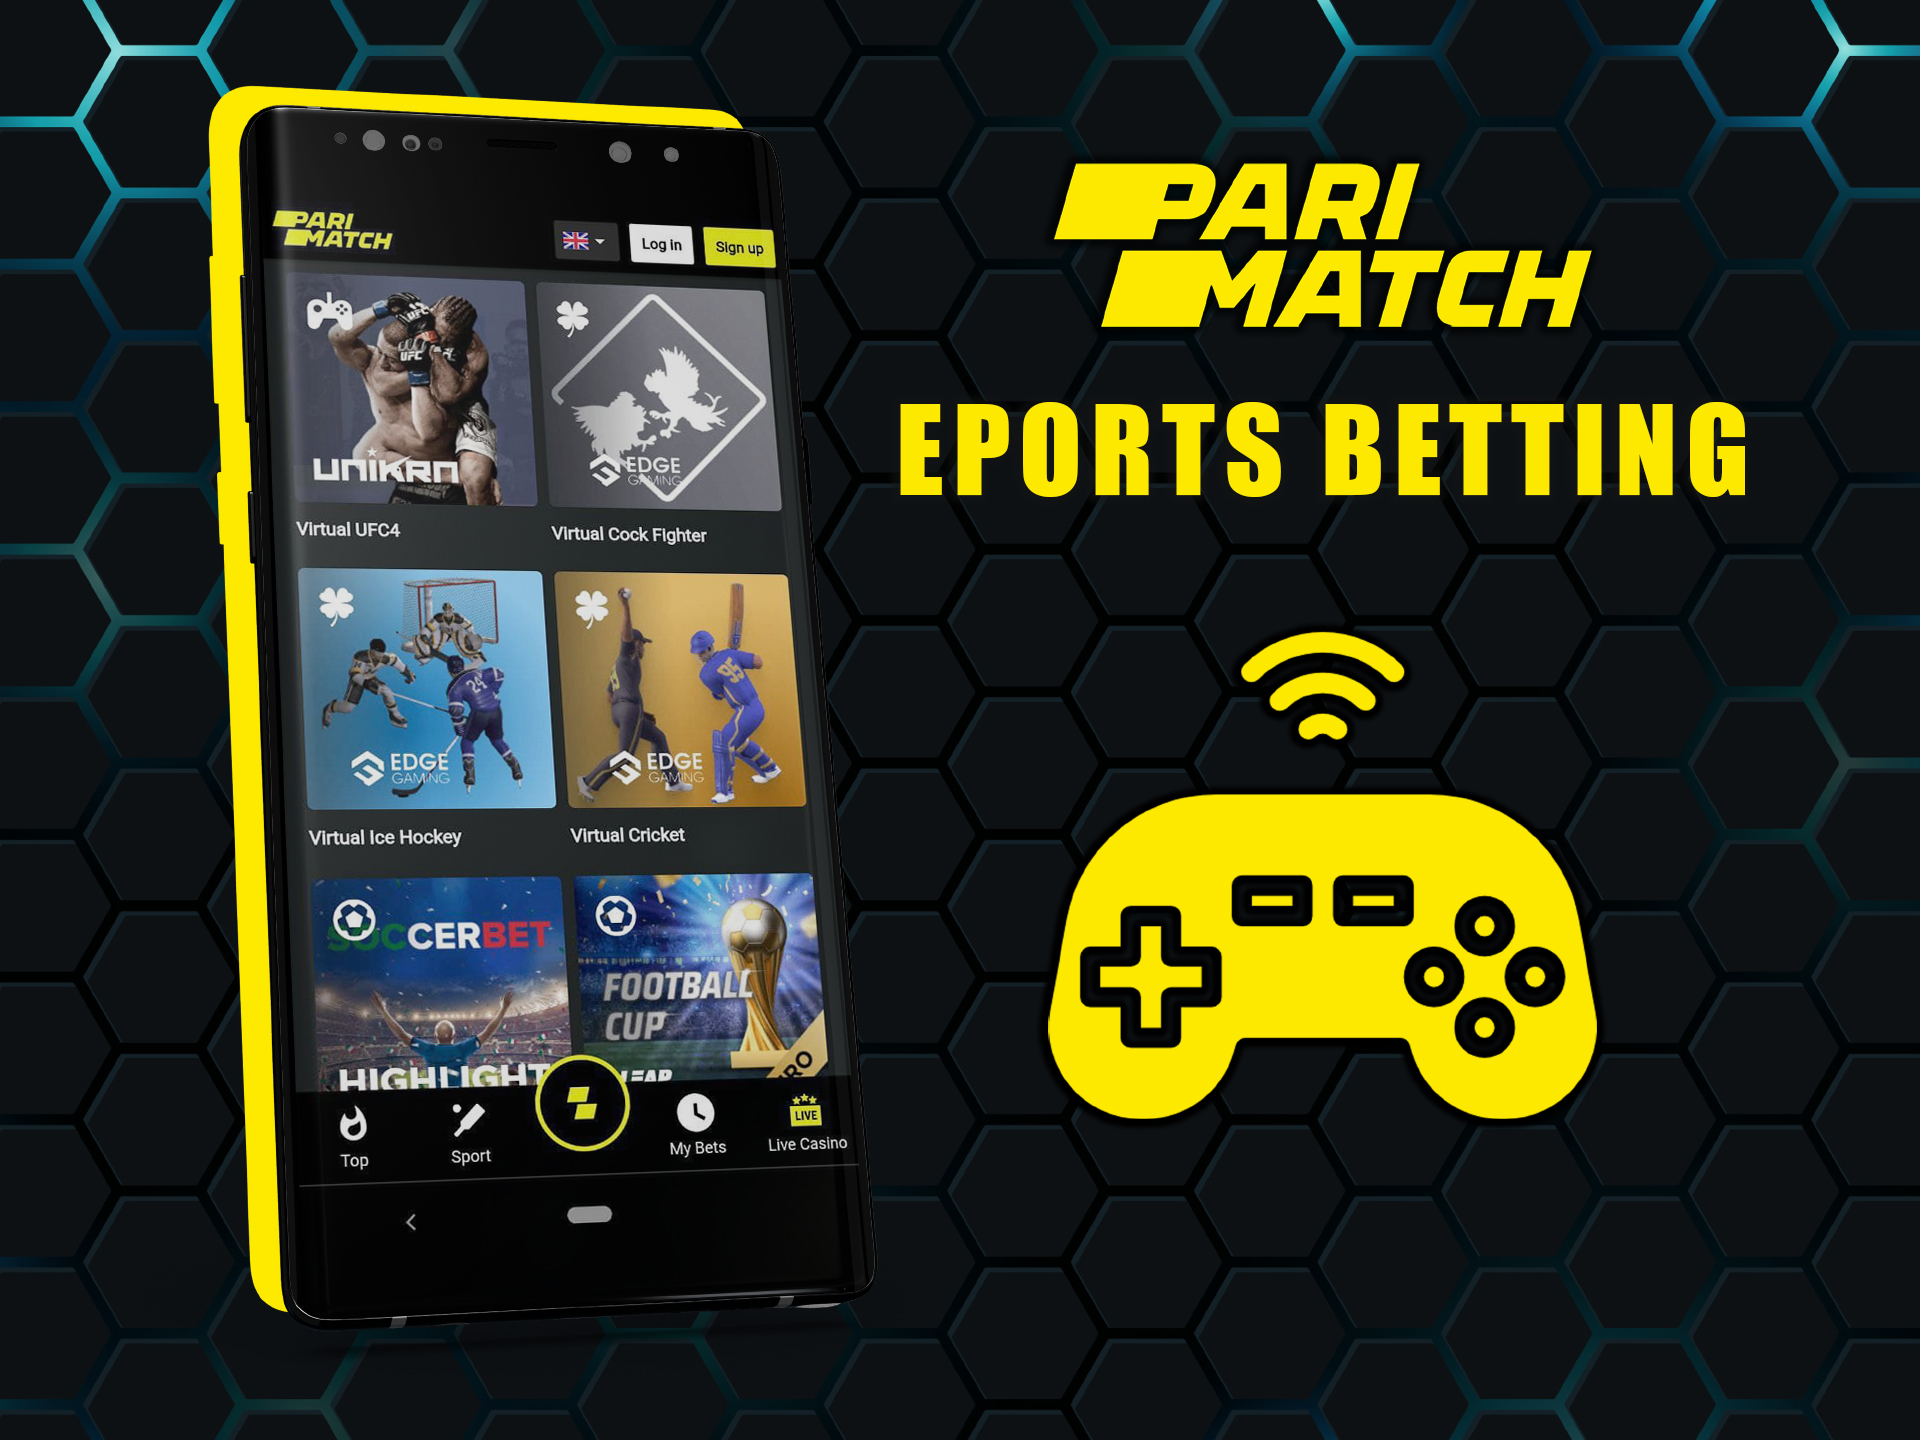 Esports matches are also a popular section for betting.